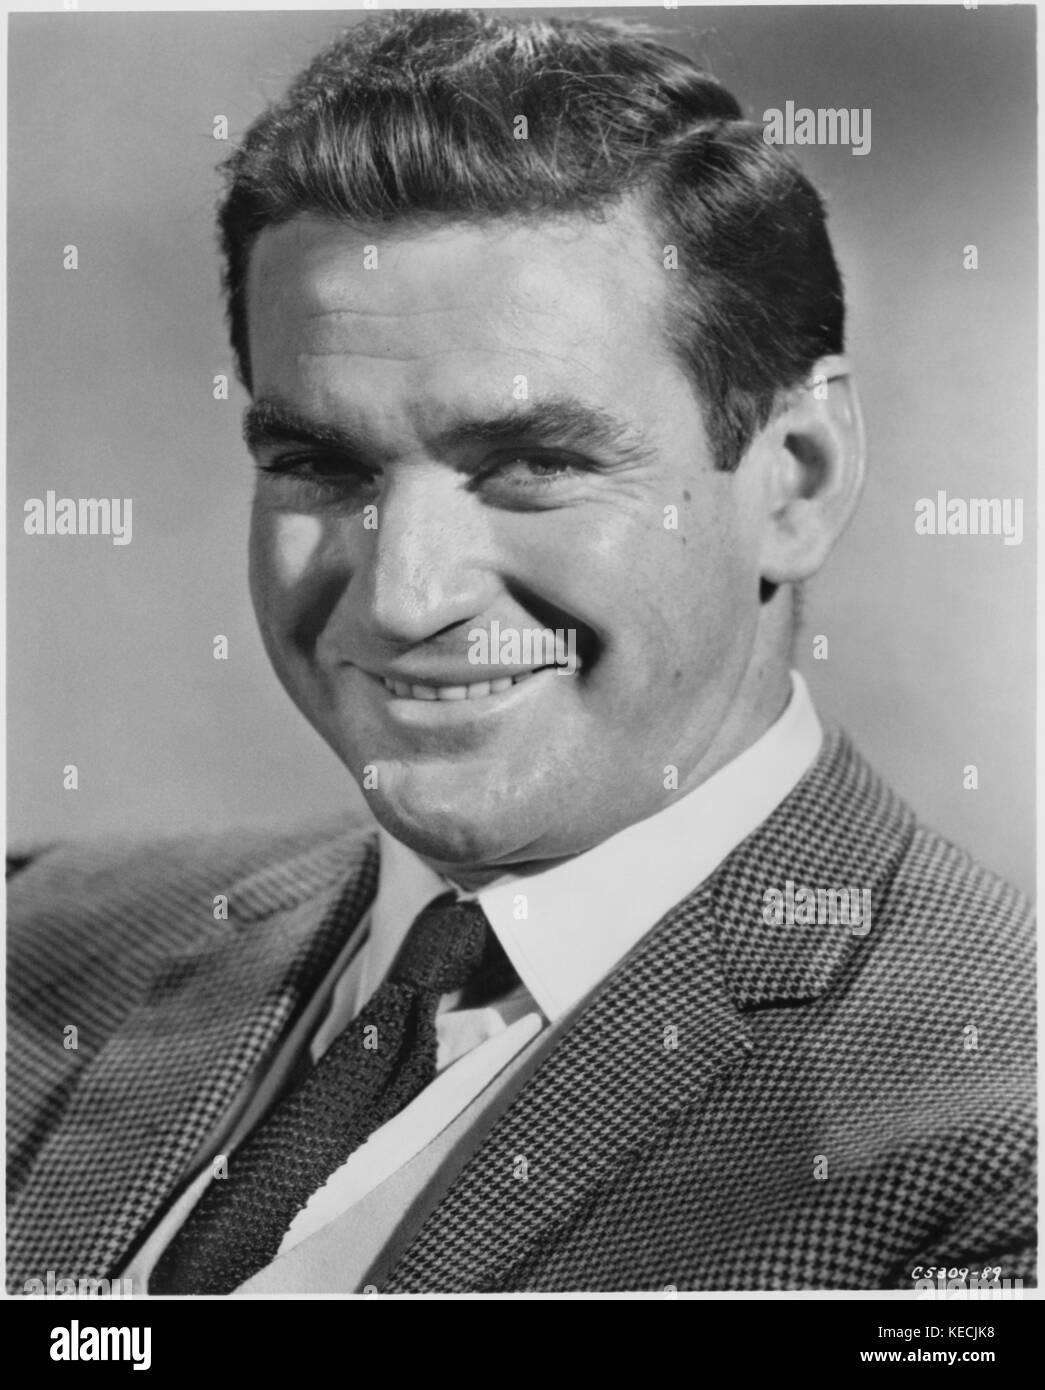 Rod Taylor, Publicity Portrait for the Film, 'The V.I.P.s', 1963 - Stock Image